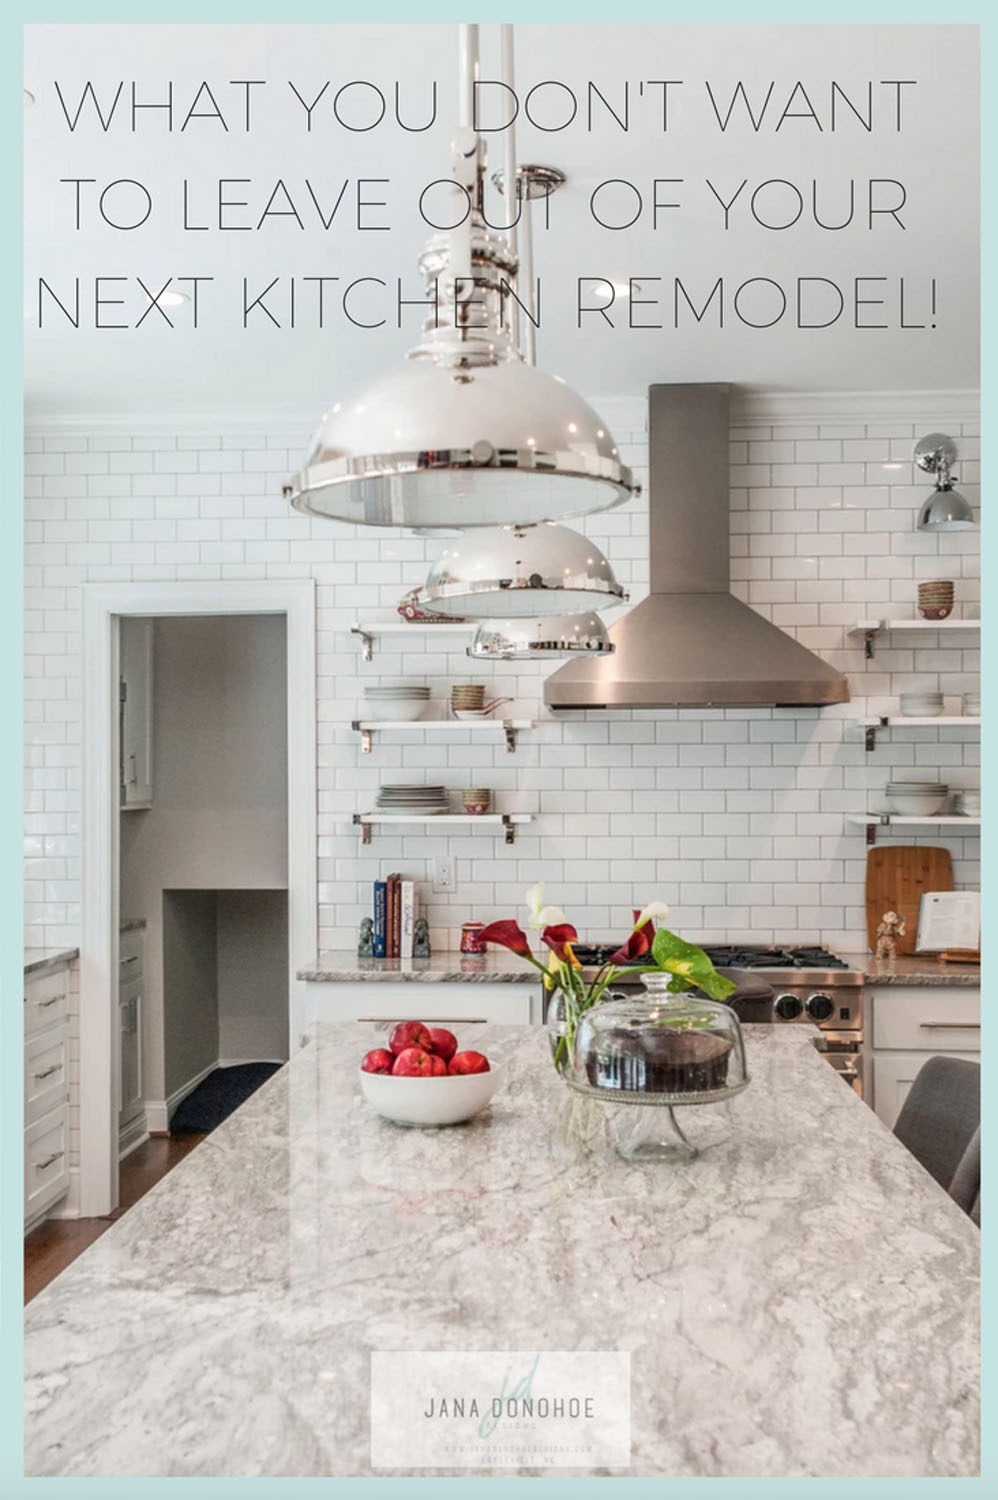 kitchen-remodel-9.jpg